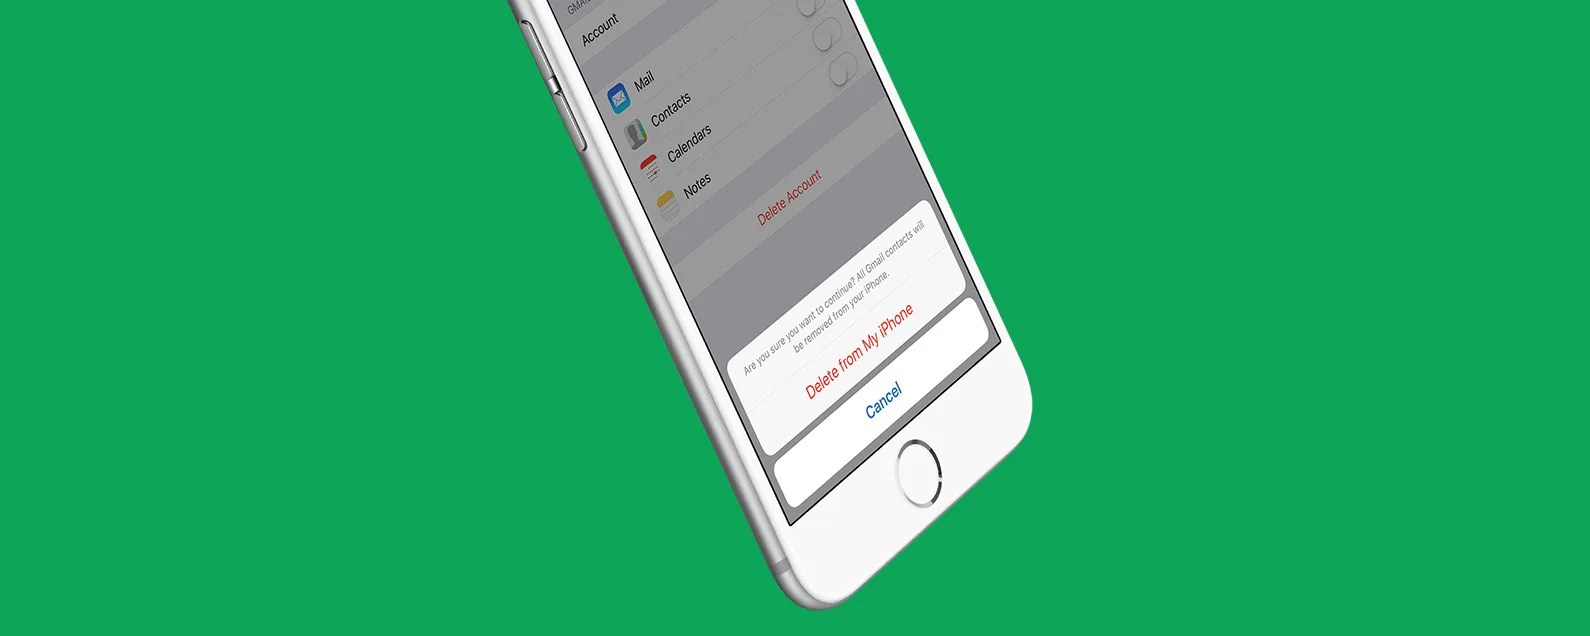 Fullsize Of How To Mass Delete Photos From Iphone